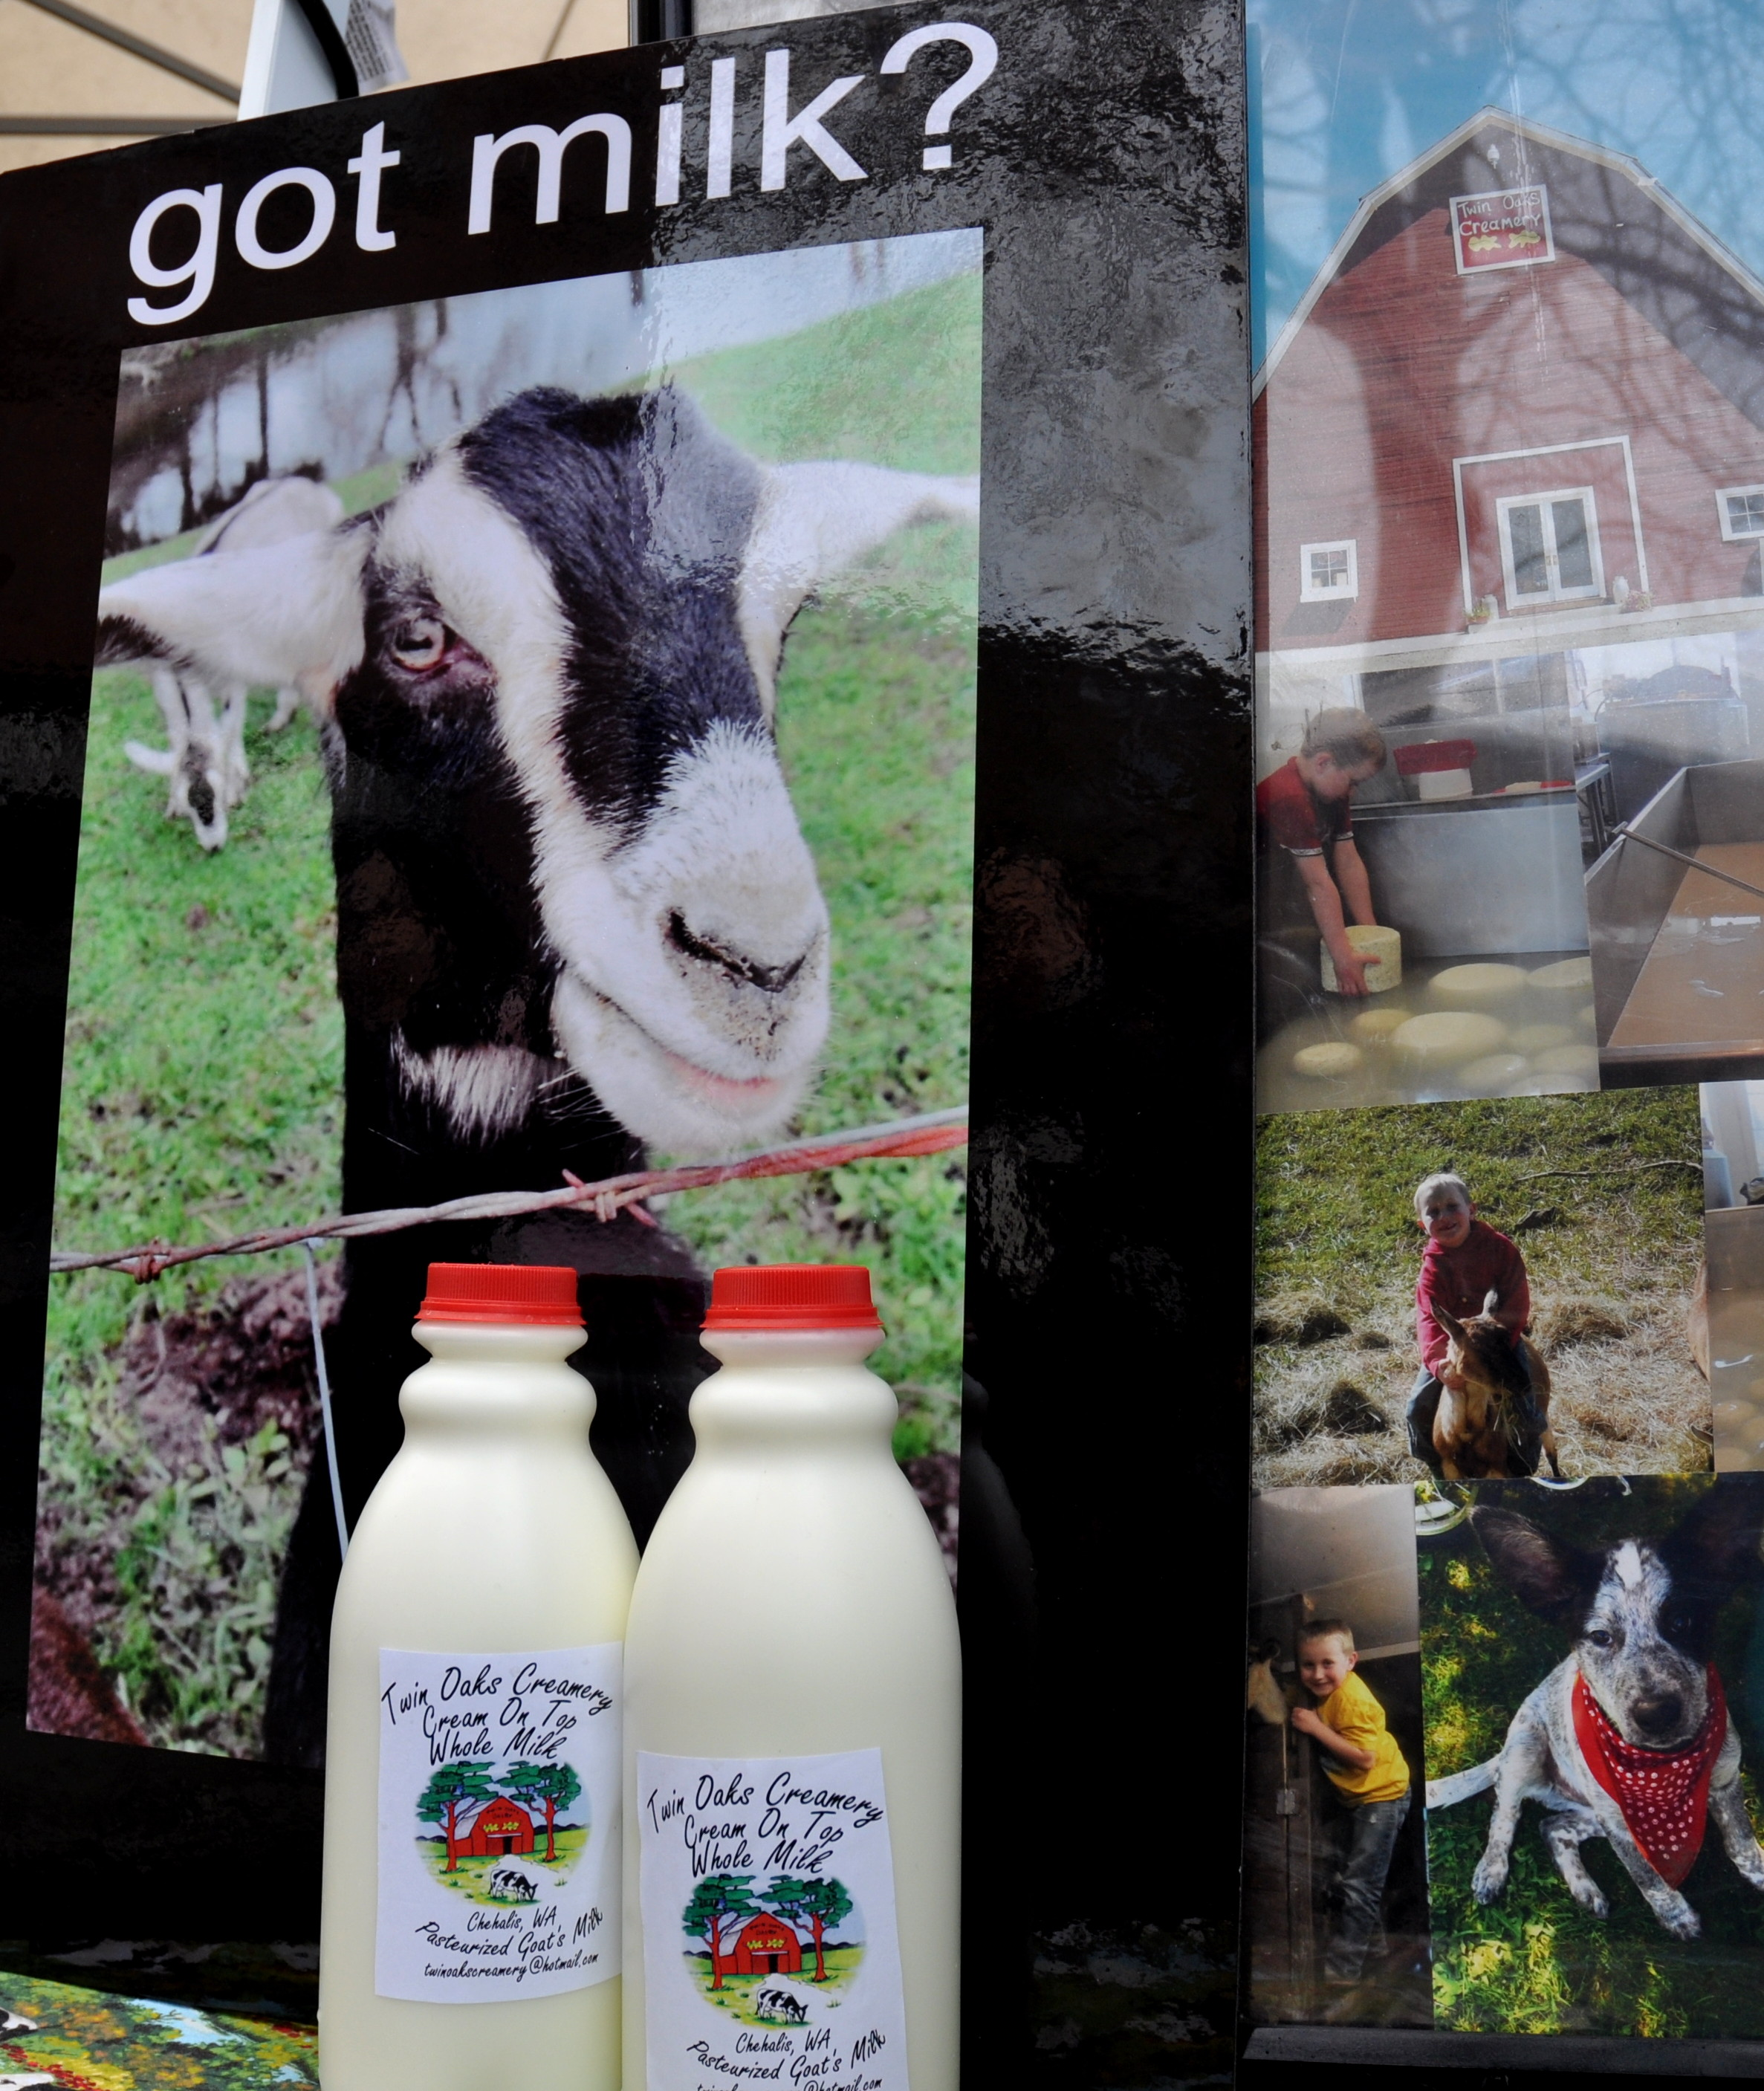 Goat milk from Twin Oaks Creamery. Photo copyright 2013 by Zachary D. Lyons.